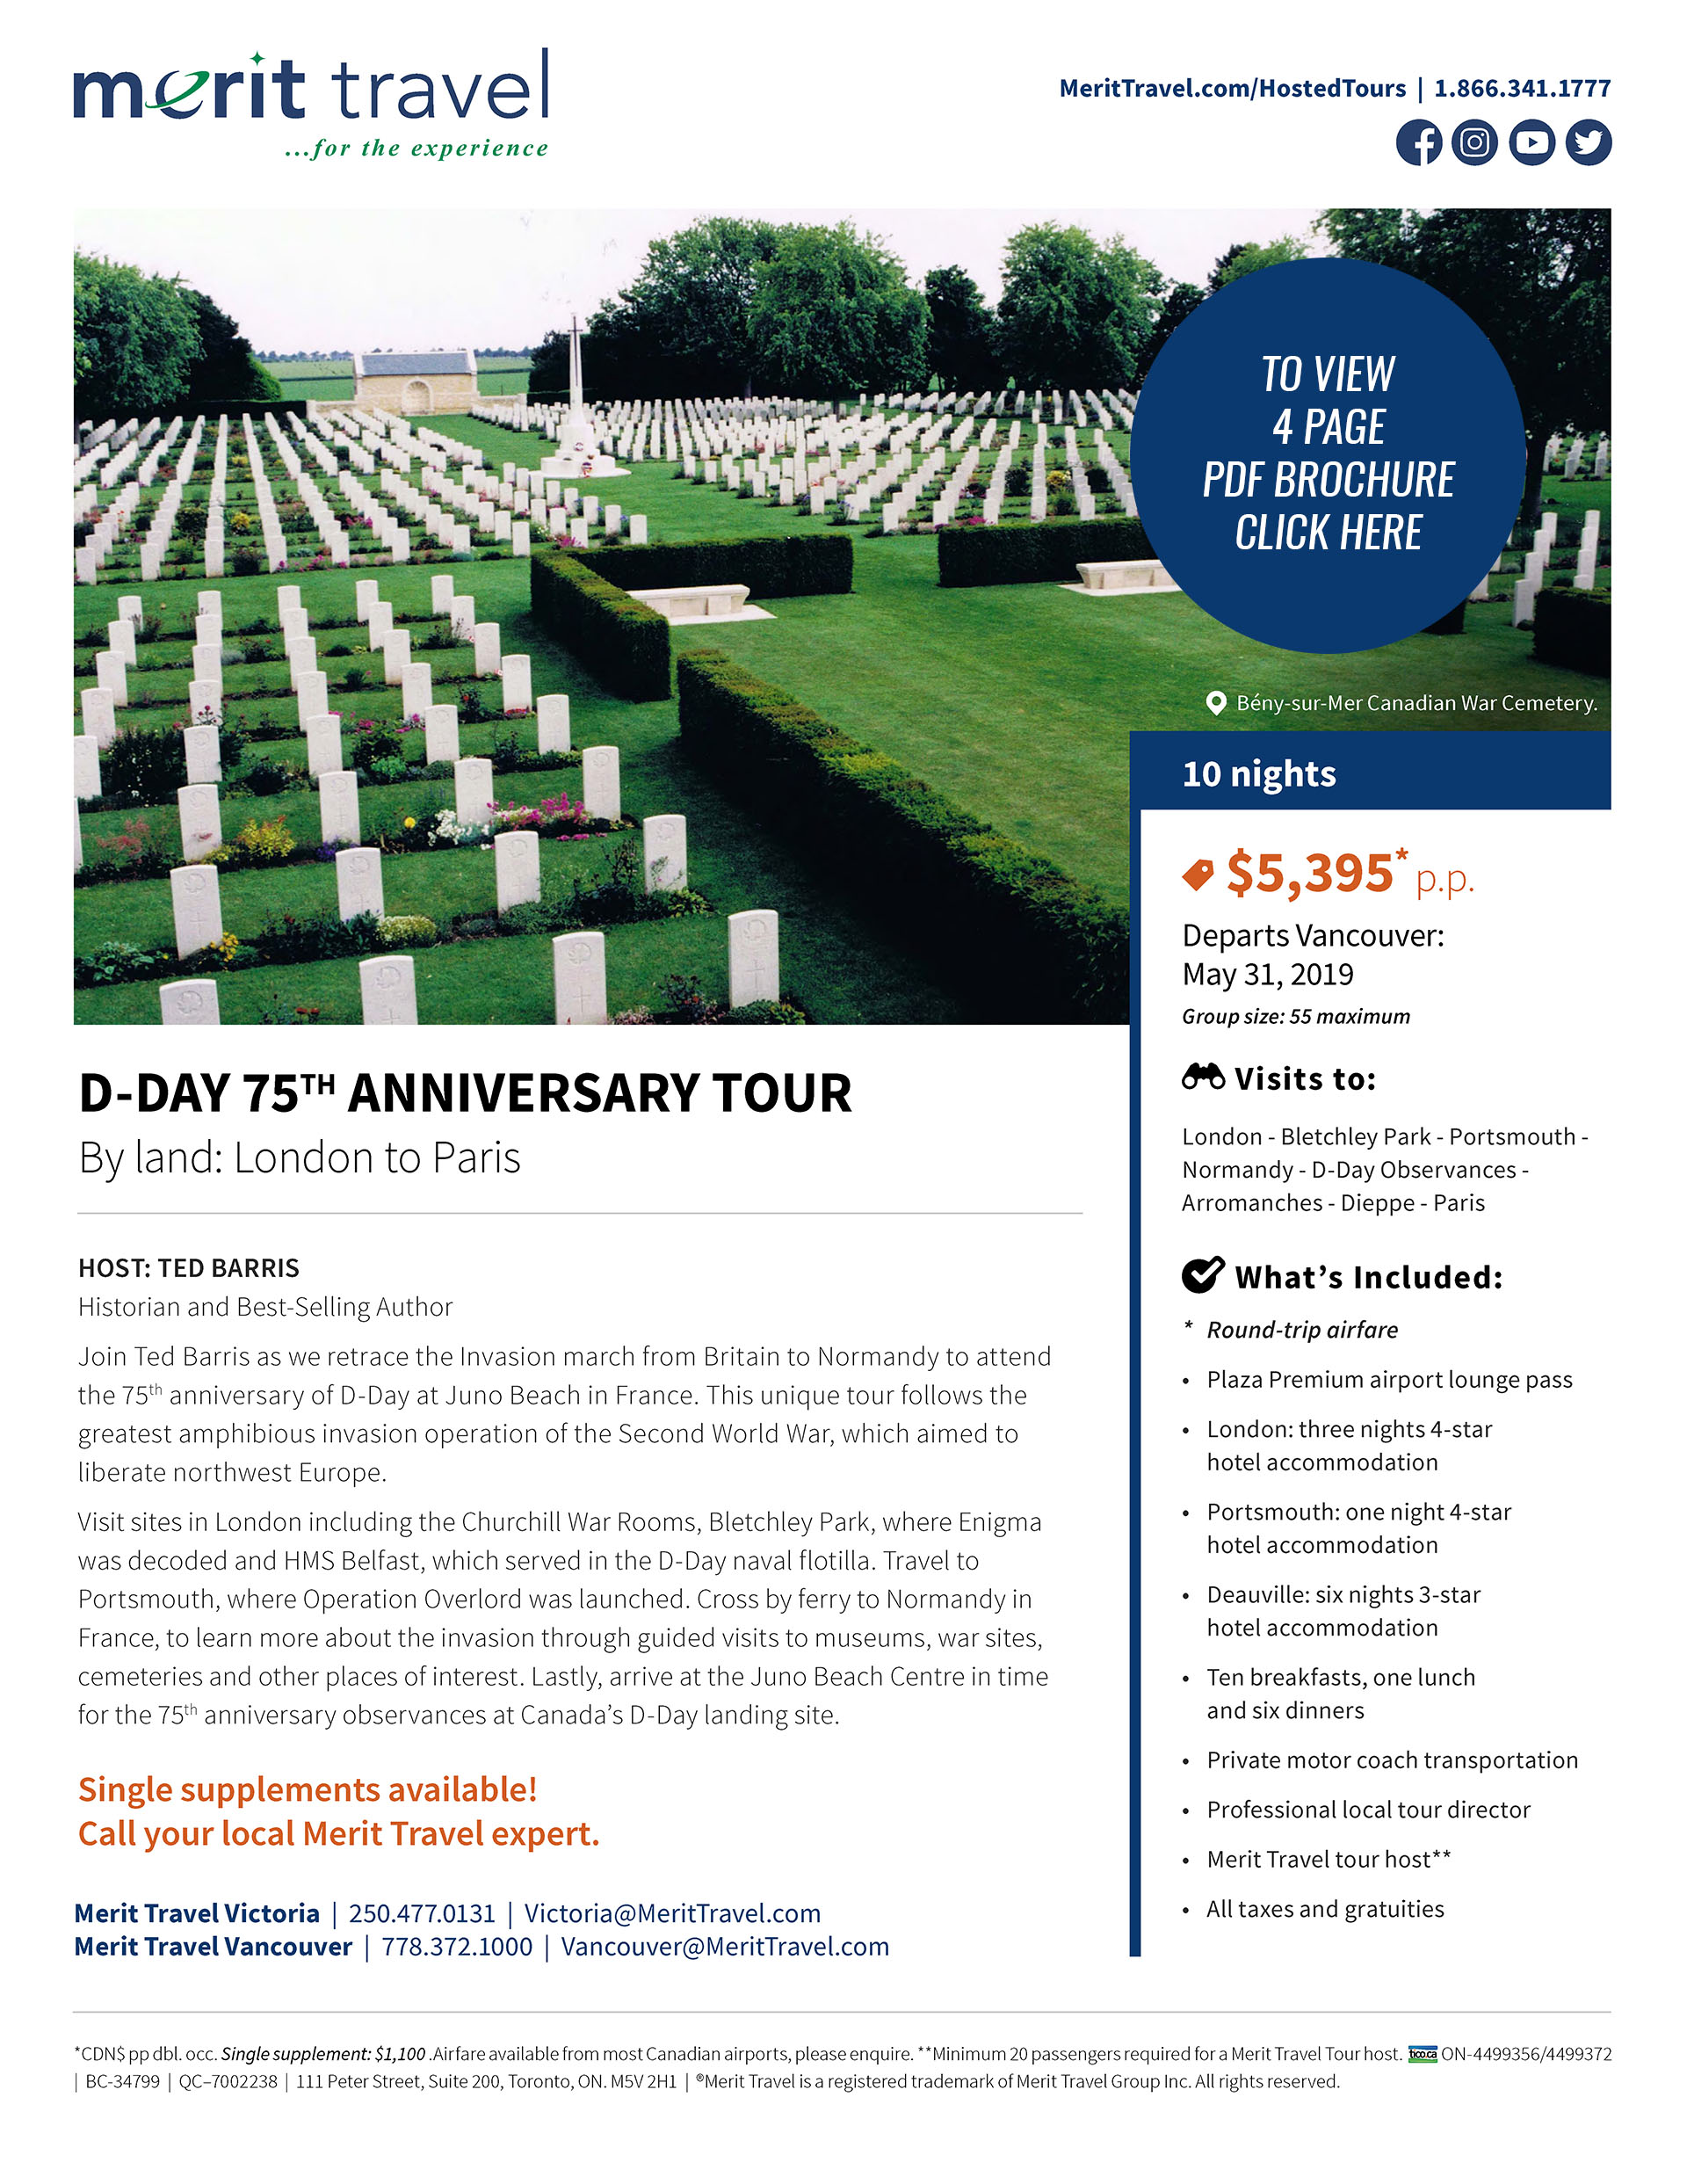 d day 75th anniversary merit travel bcrta